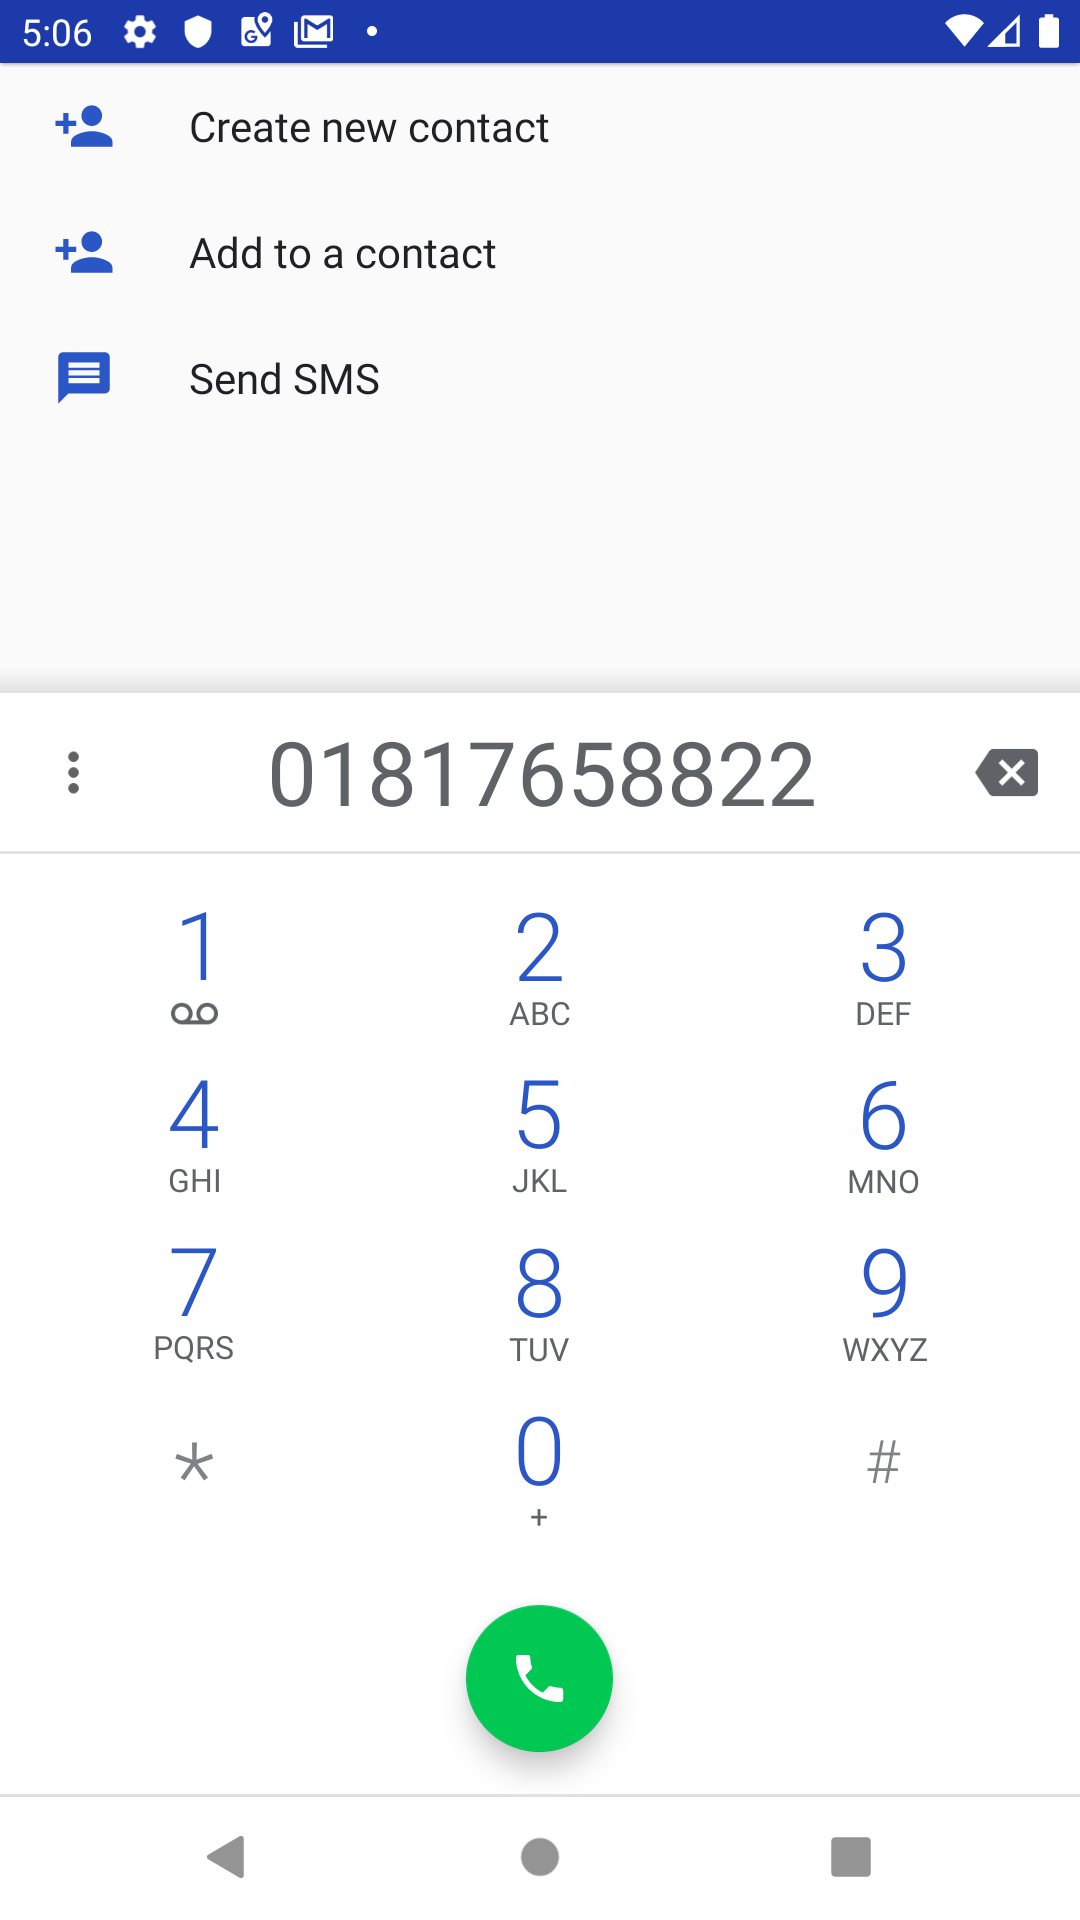 Screenshot of the url_launcher launching a phone number with prompts for contact and SMS.